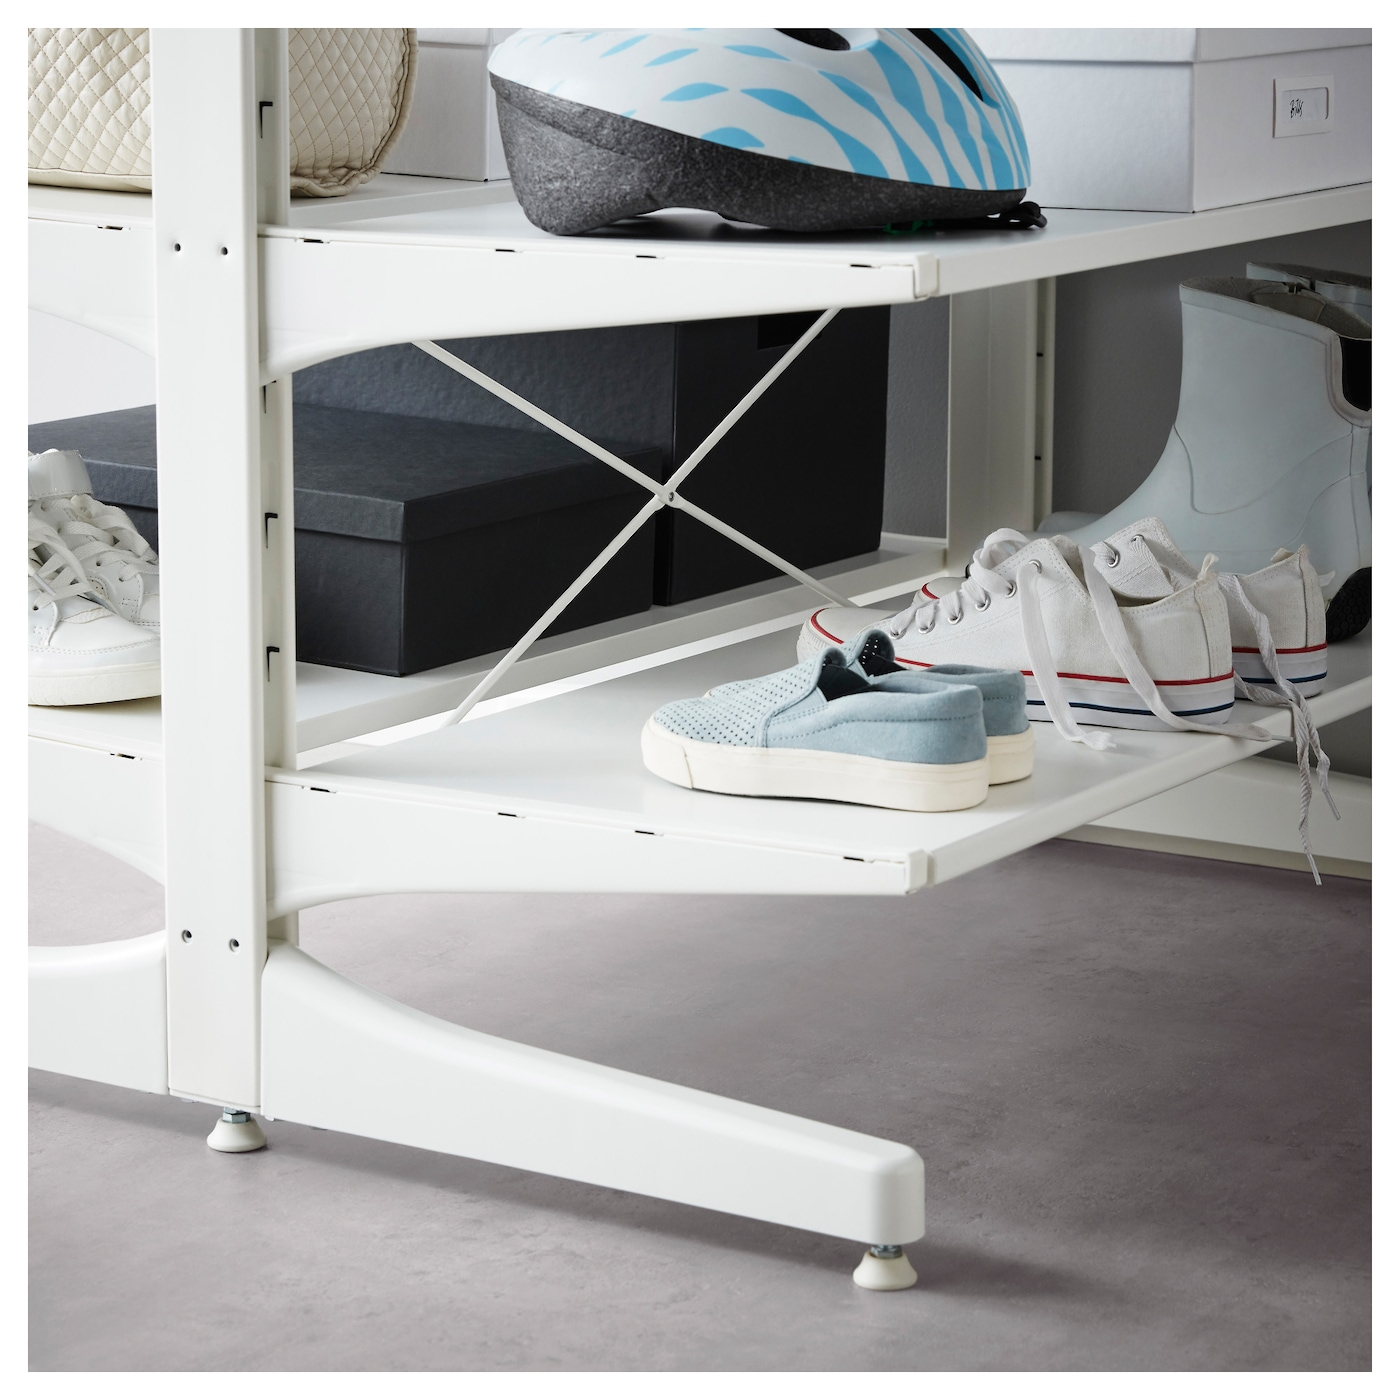 IKEA ALGOT top rail with cross-brace Can also be used in bathrooms and other damp areas indoors.